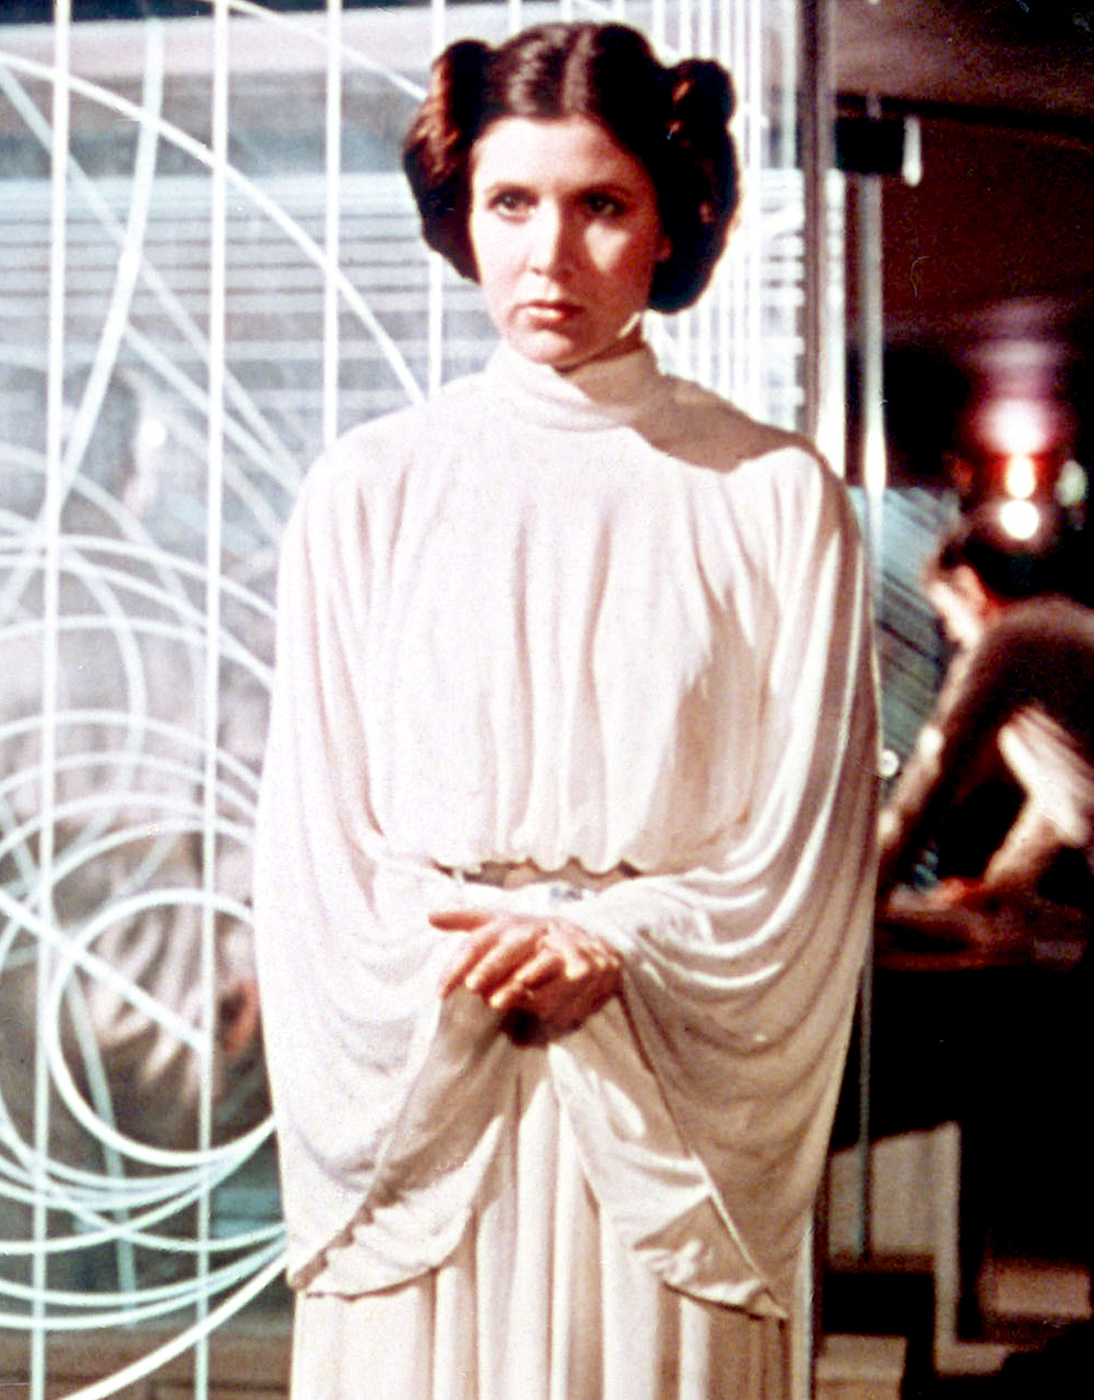 The late actress, who passed away in December 2016 at the age of 60, first took on the role of Princess Leia in Star Wars in 1977. She continued to reprise the role up until her last days with performances in the Empire Strikes Back and Return of the Jedi , and, more recently, the Force Awakens , the Last Jedi and the Rise of Skywalker .